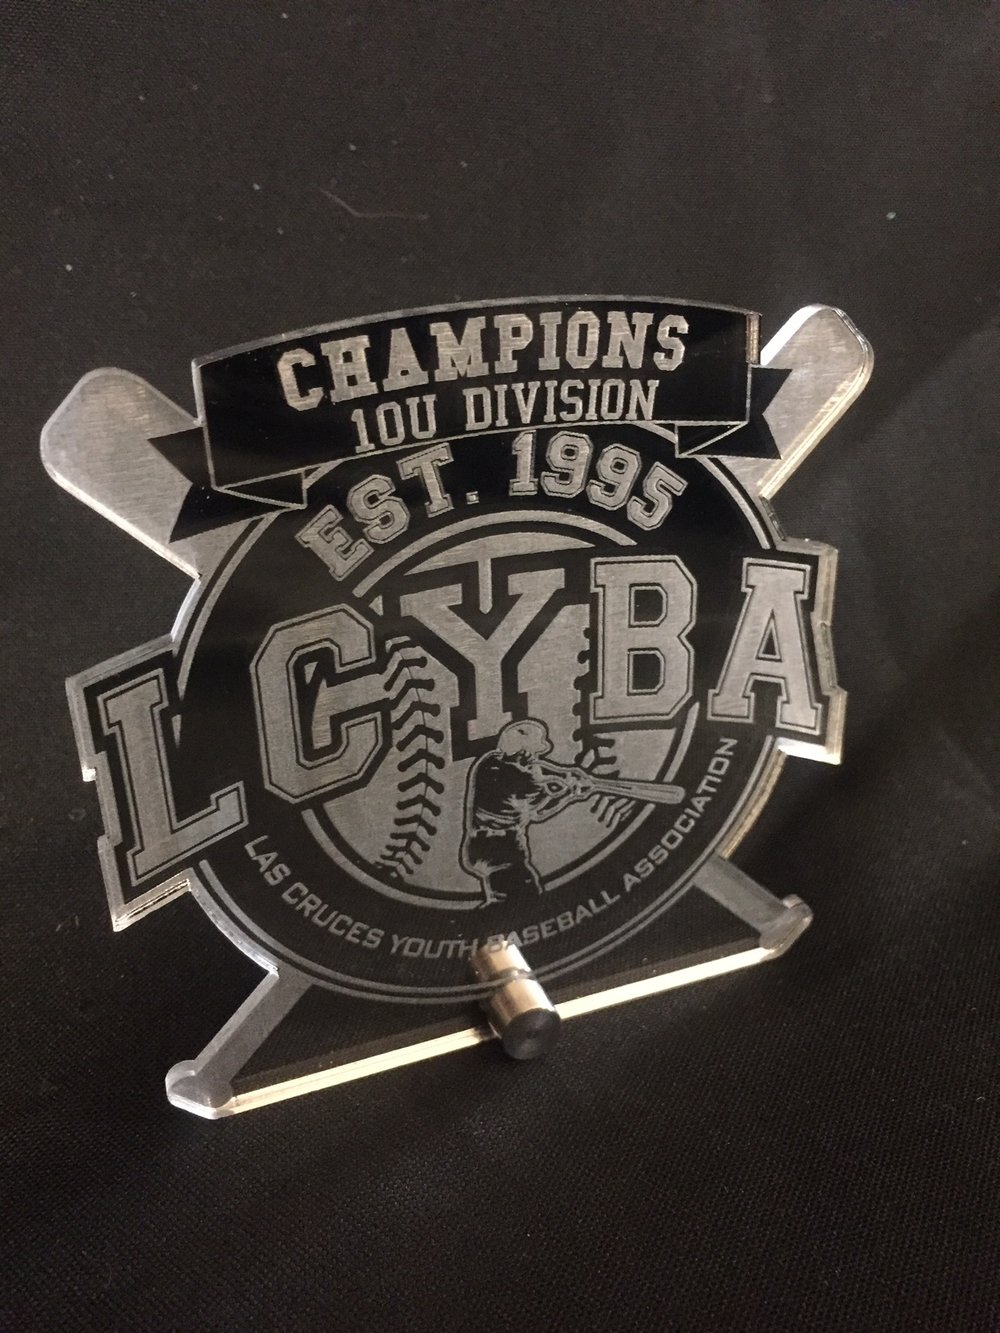 Las Cruces Youth Baseball Association - Division Champion Award  Contact us for pricing information.